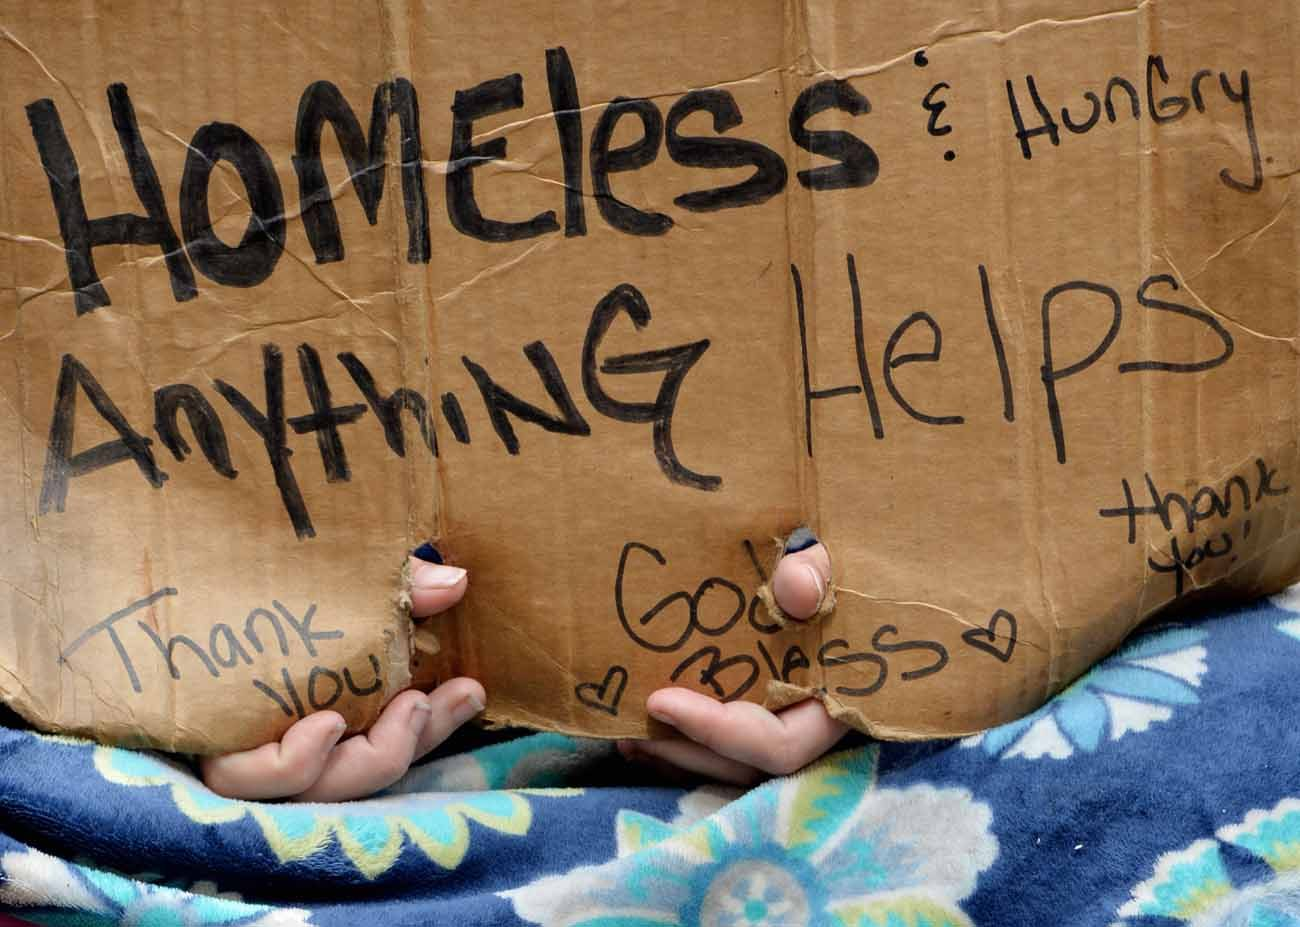 A homeless person holds a sign in 2014 while sitting on a sidewalk in New York. As Catholic Charities of the Archdiocese of New York opened its centennial year, the archdiocese launched a campaign to raise $100 million by 2022 for services and opportunities for children and families, especially the poorest and most vulnerable. (CNS photo/Justin Lane, EPA)